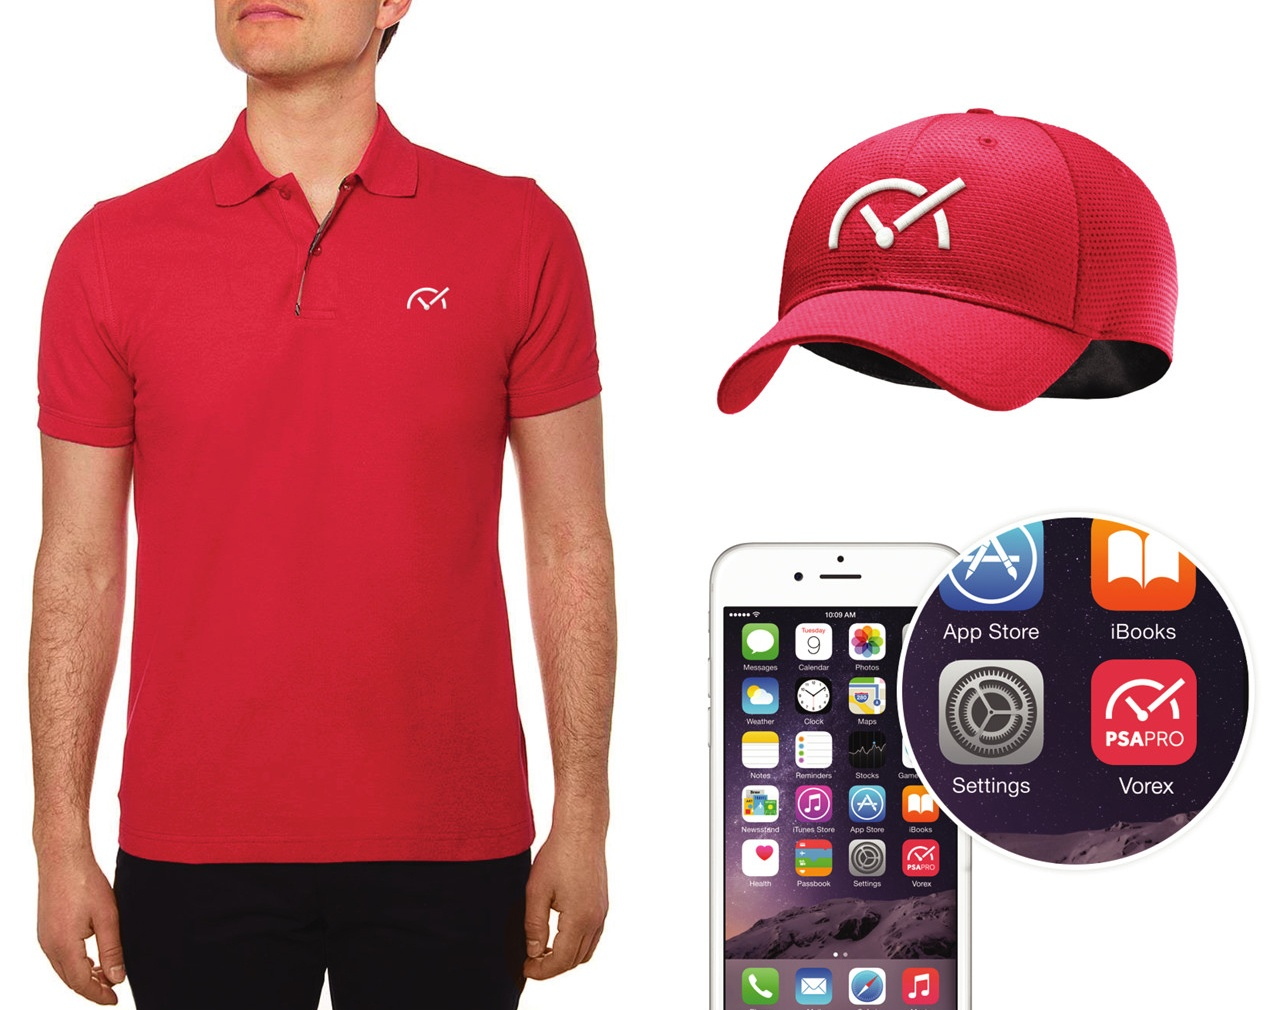 Vorex Branded Polo and Hat Design by Salted Stone